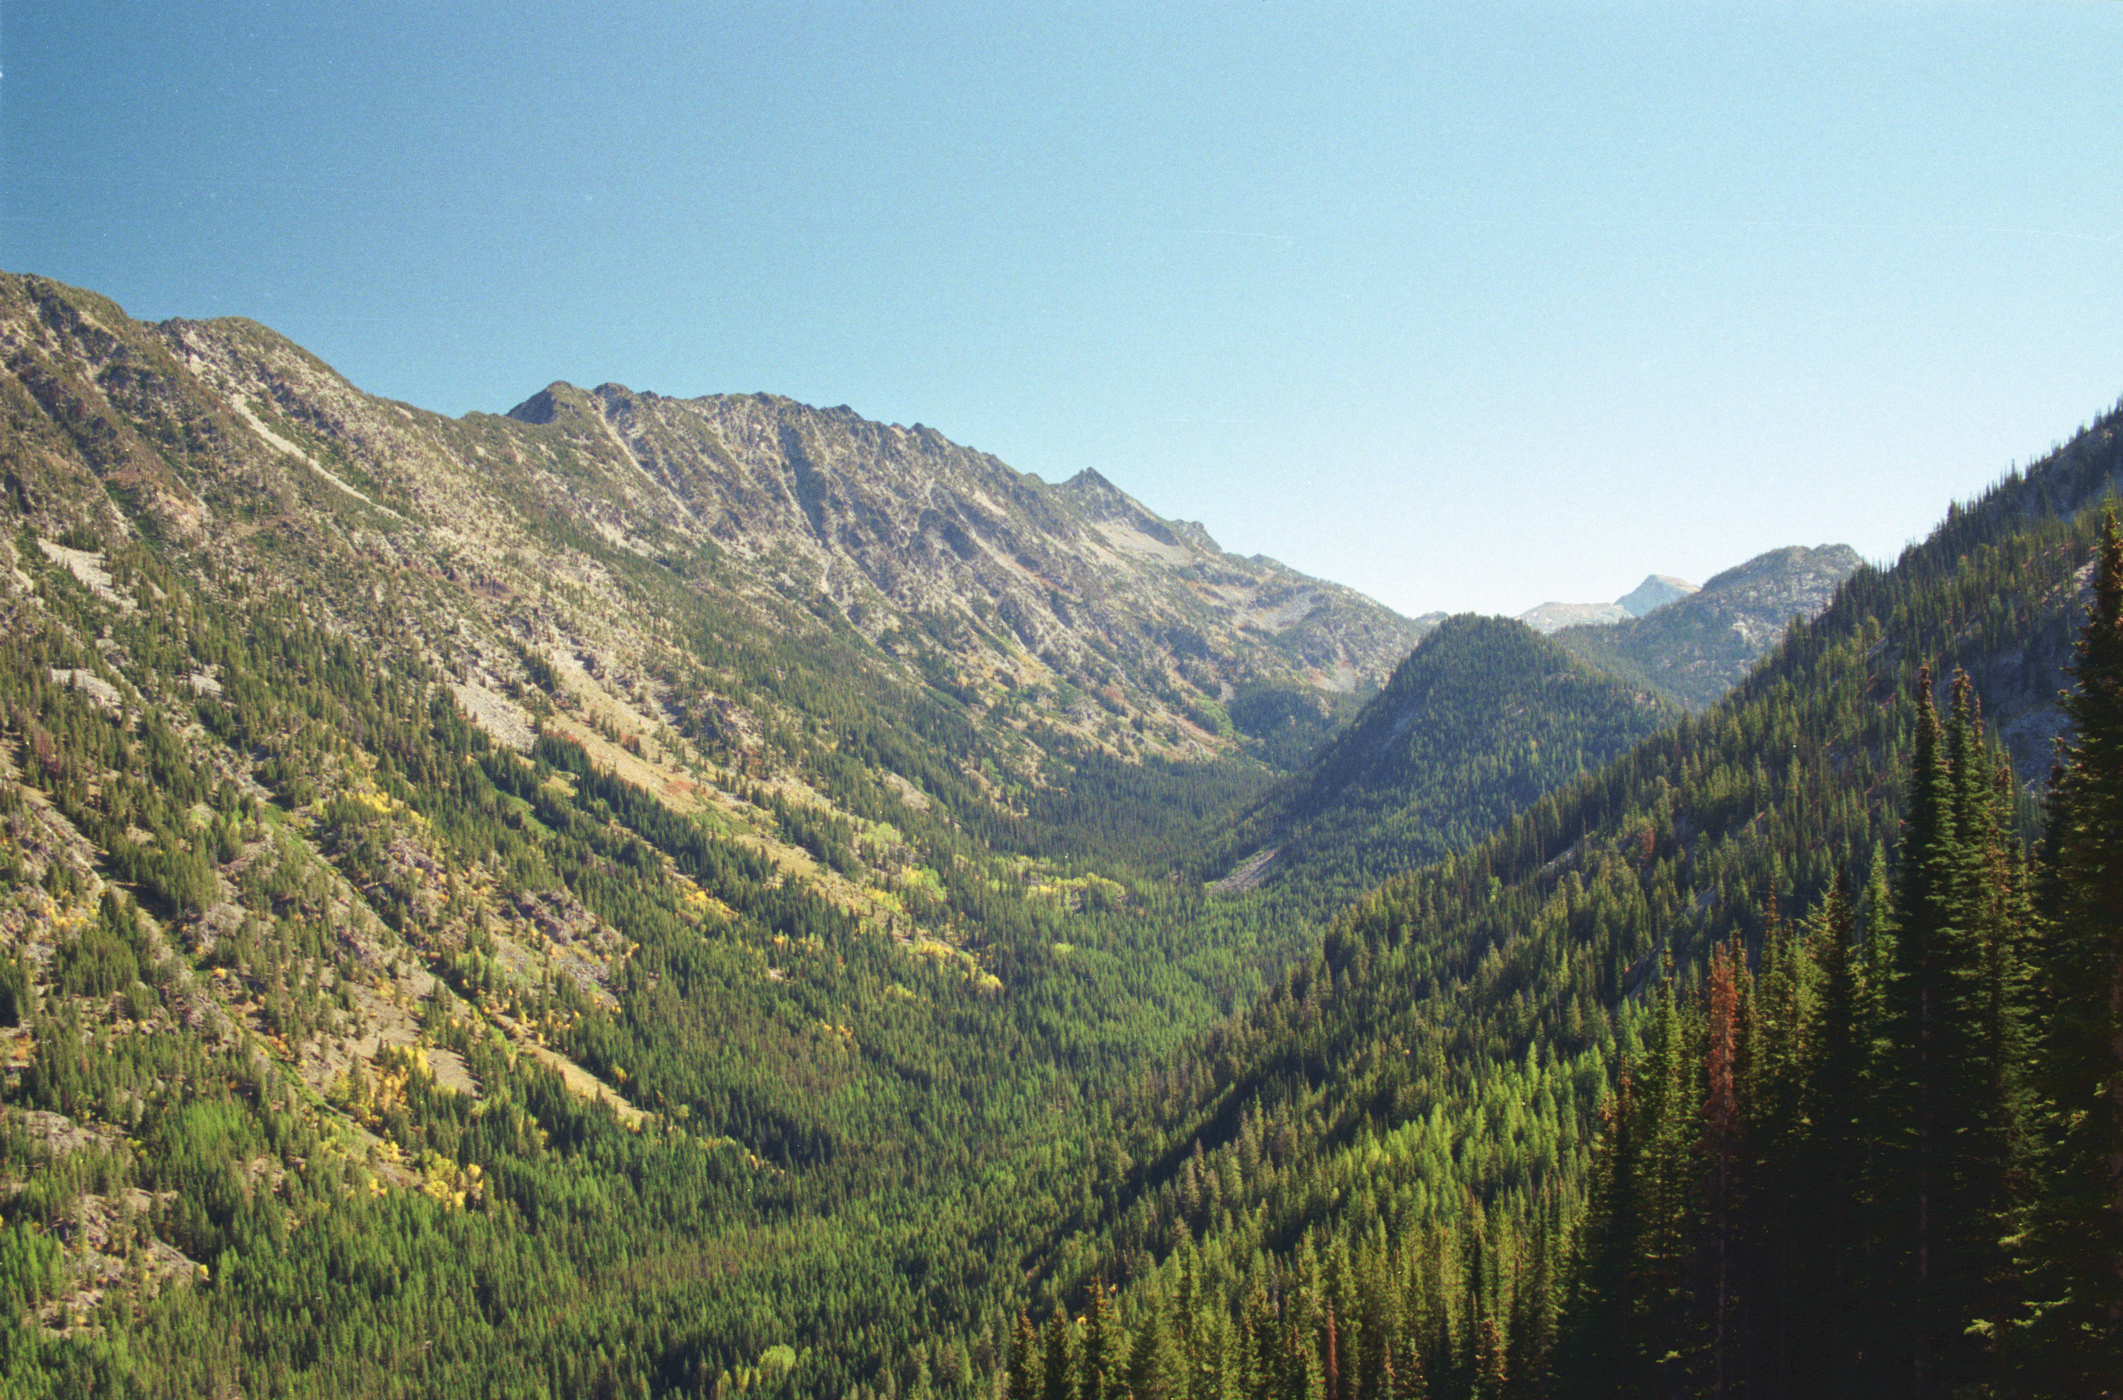 Lostine River Valley